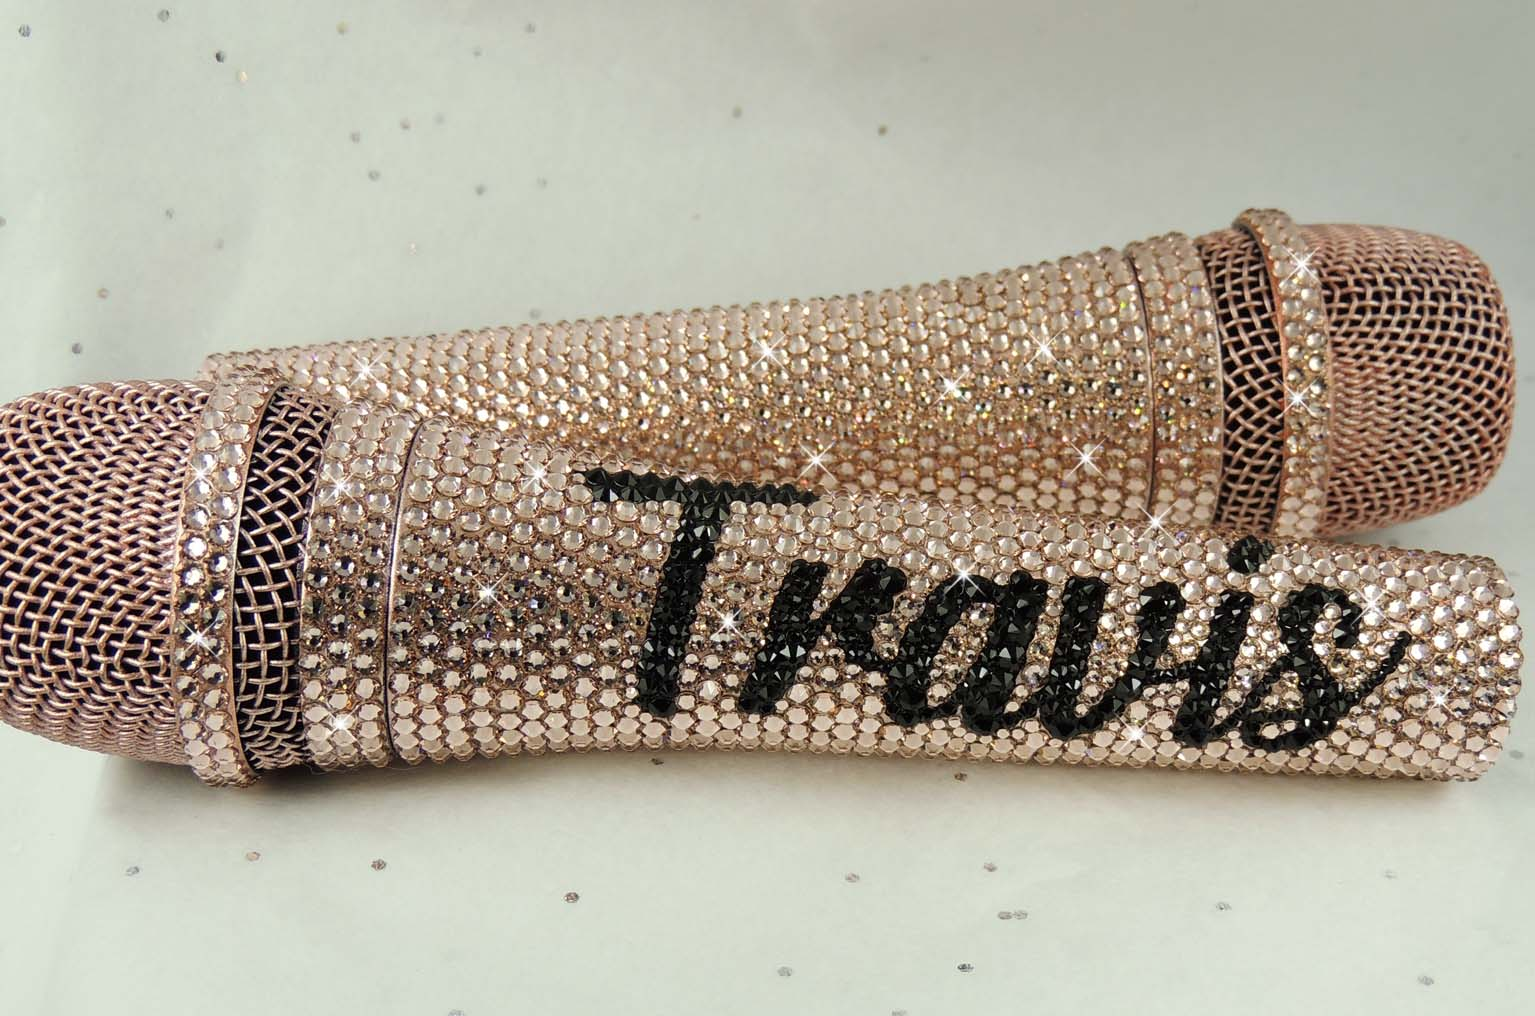 Rose gold sennheiser swarovski crystal bling microphones personalised with name in black.